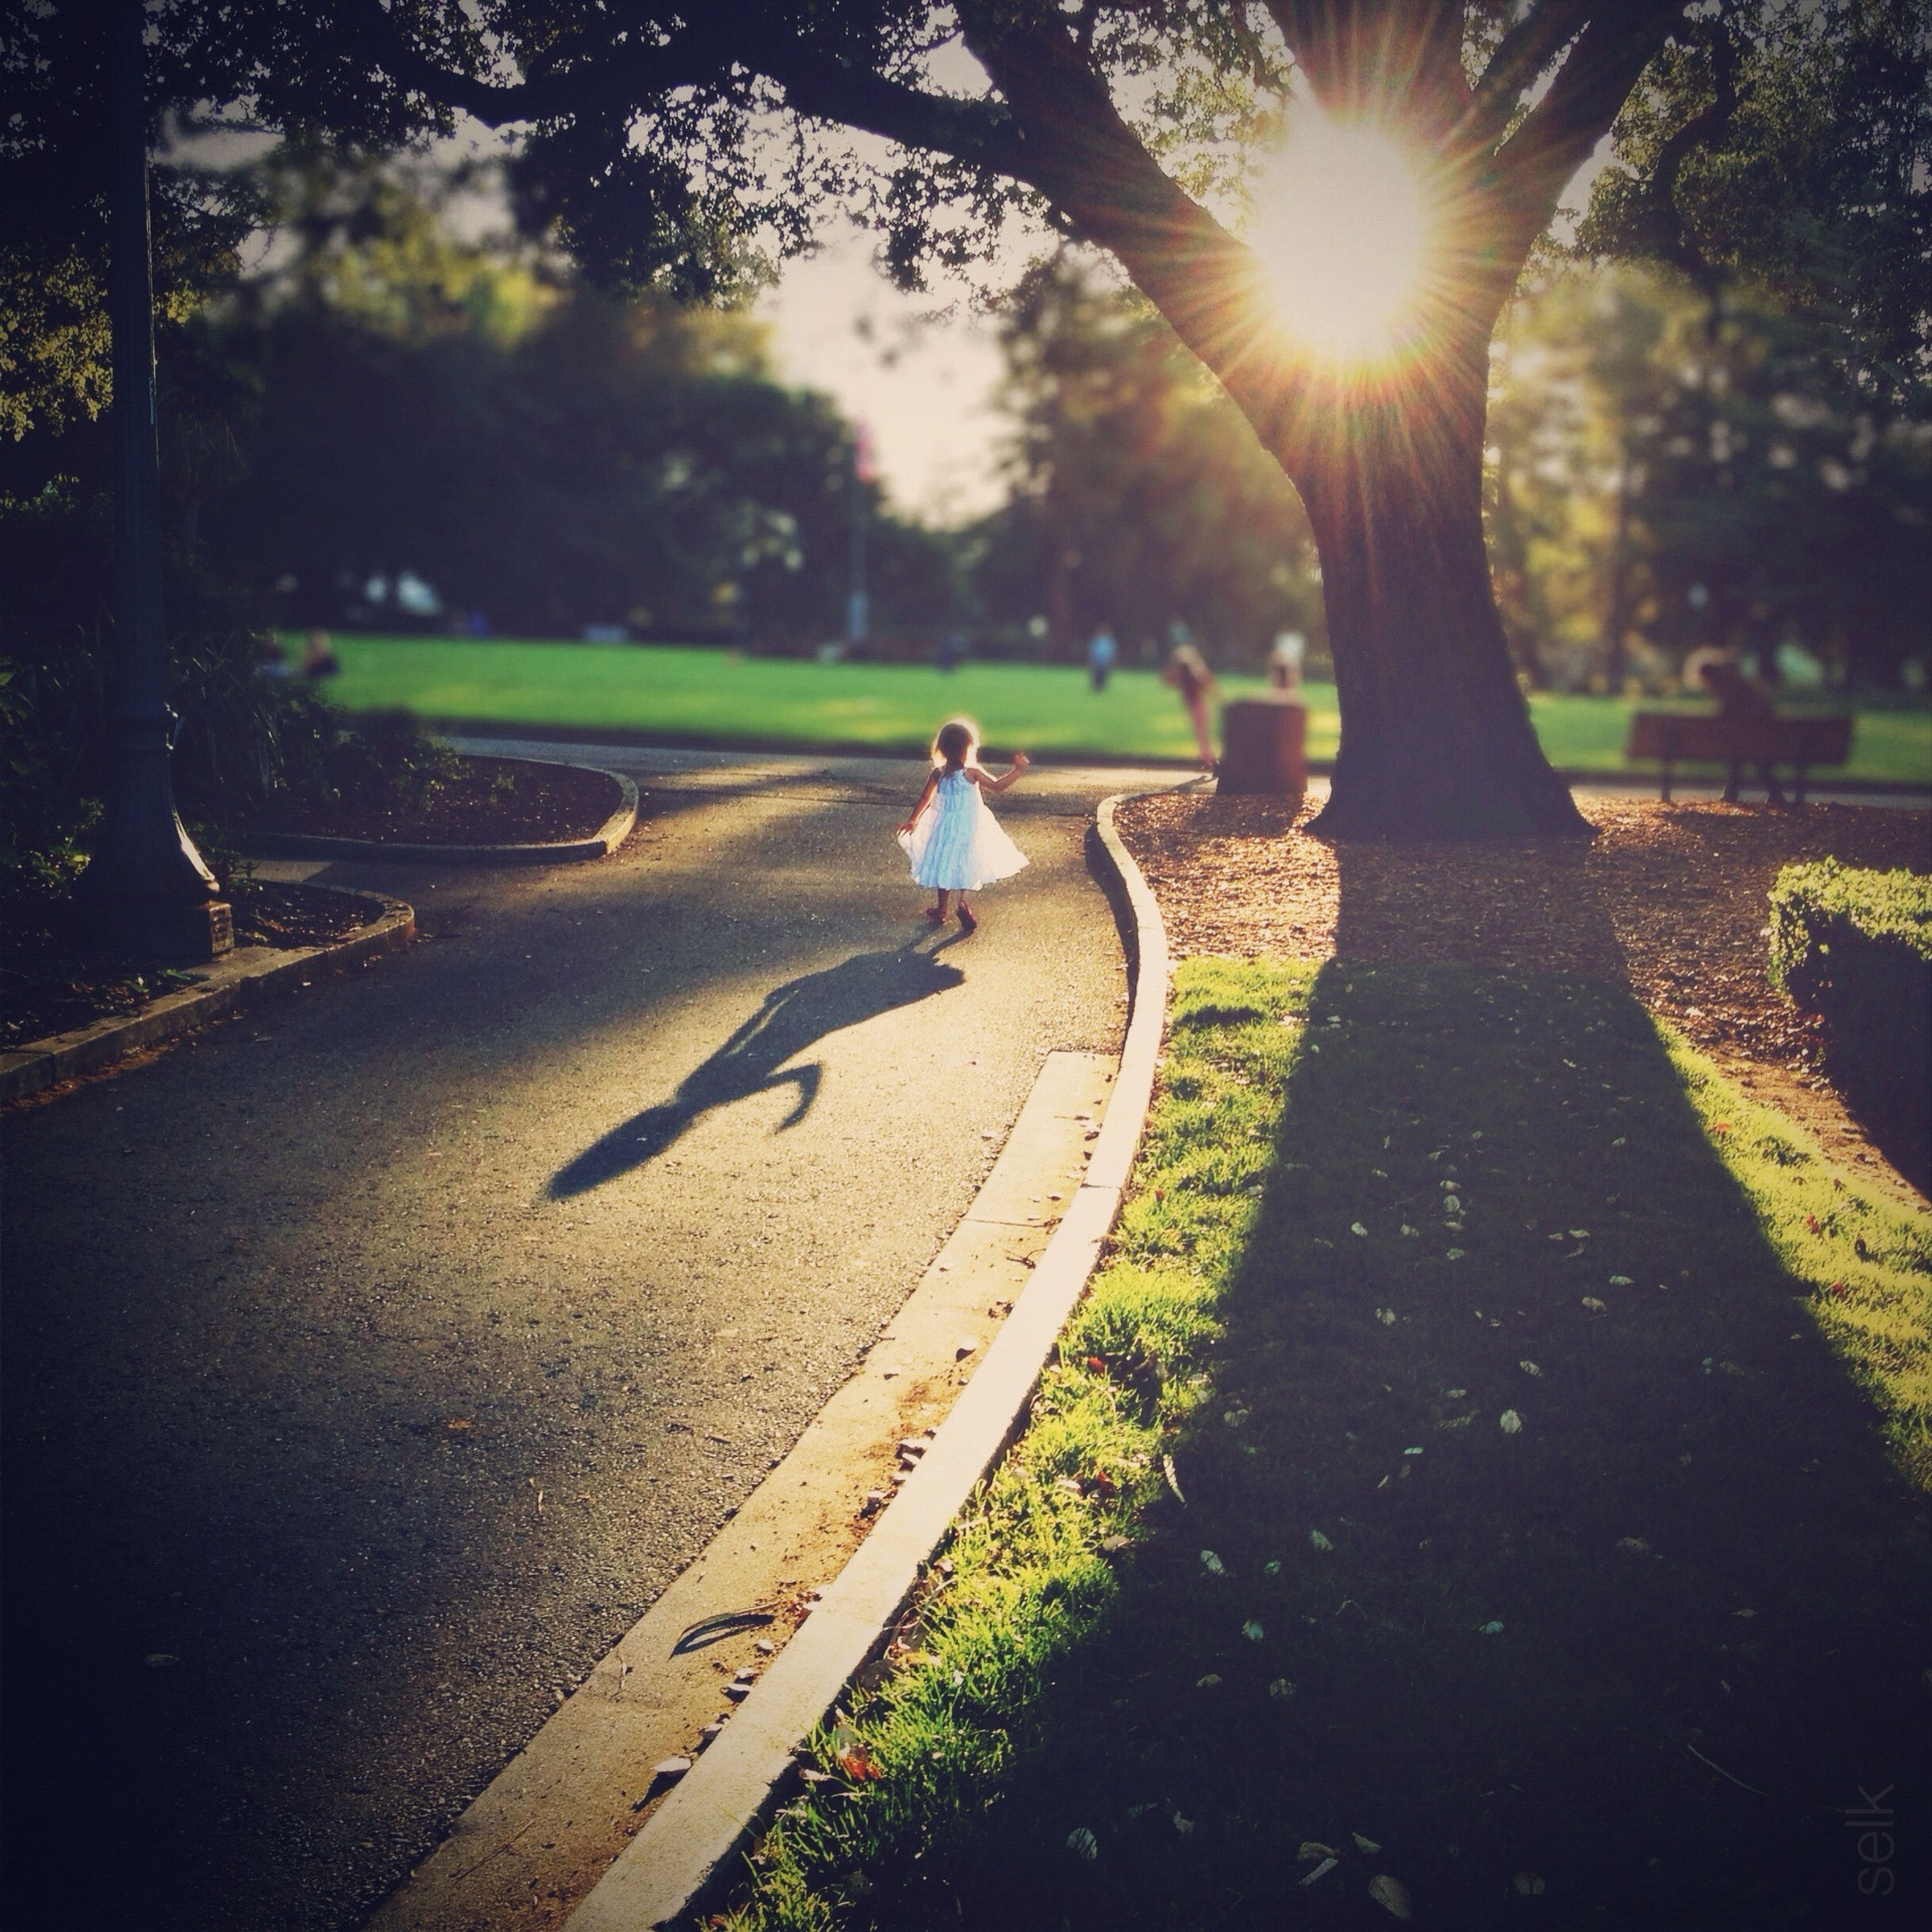 sunlight, shadow, full length, bird, road, street, animal themes, one person, one animal, tree, outdoors, mid-air, day, park - man made space, sunny, grass, walking, side view, nature, wildlife